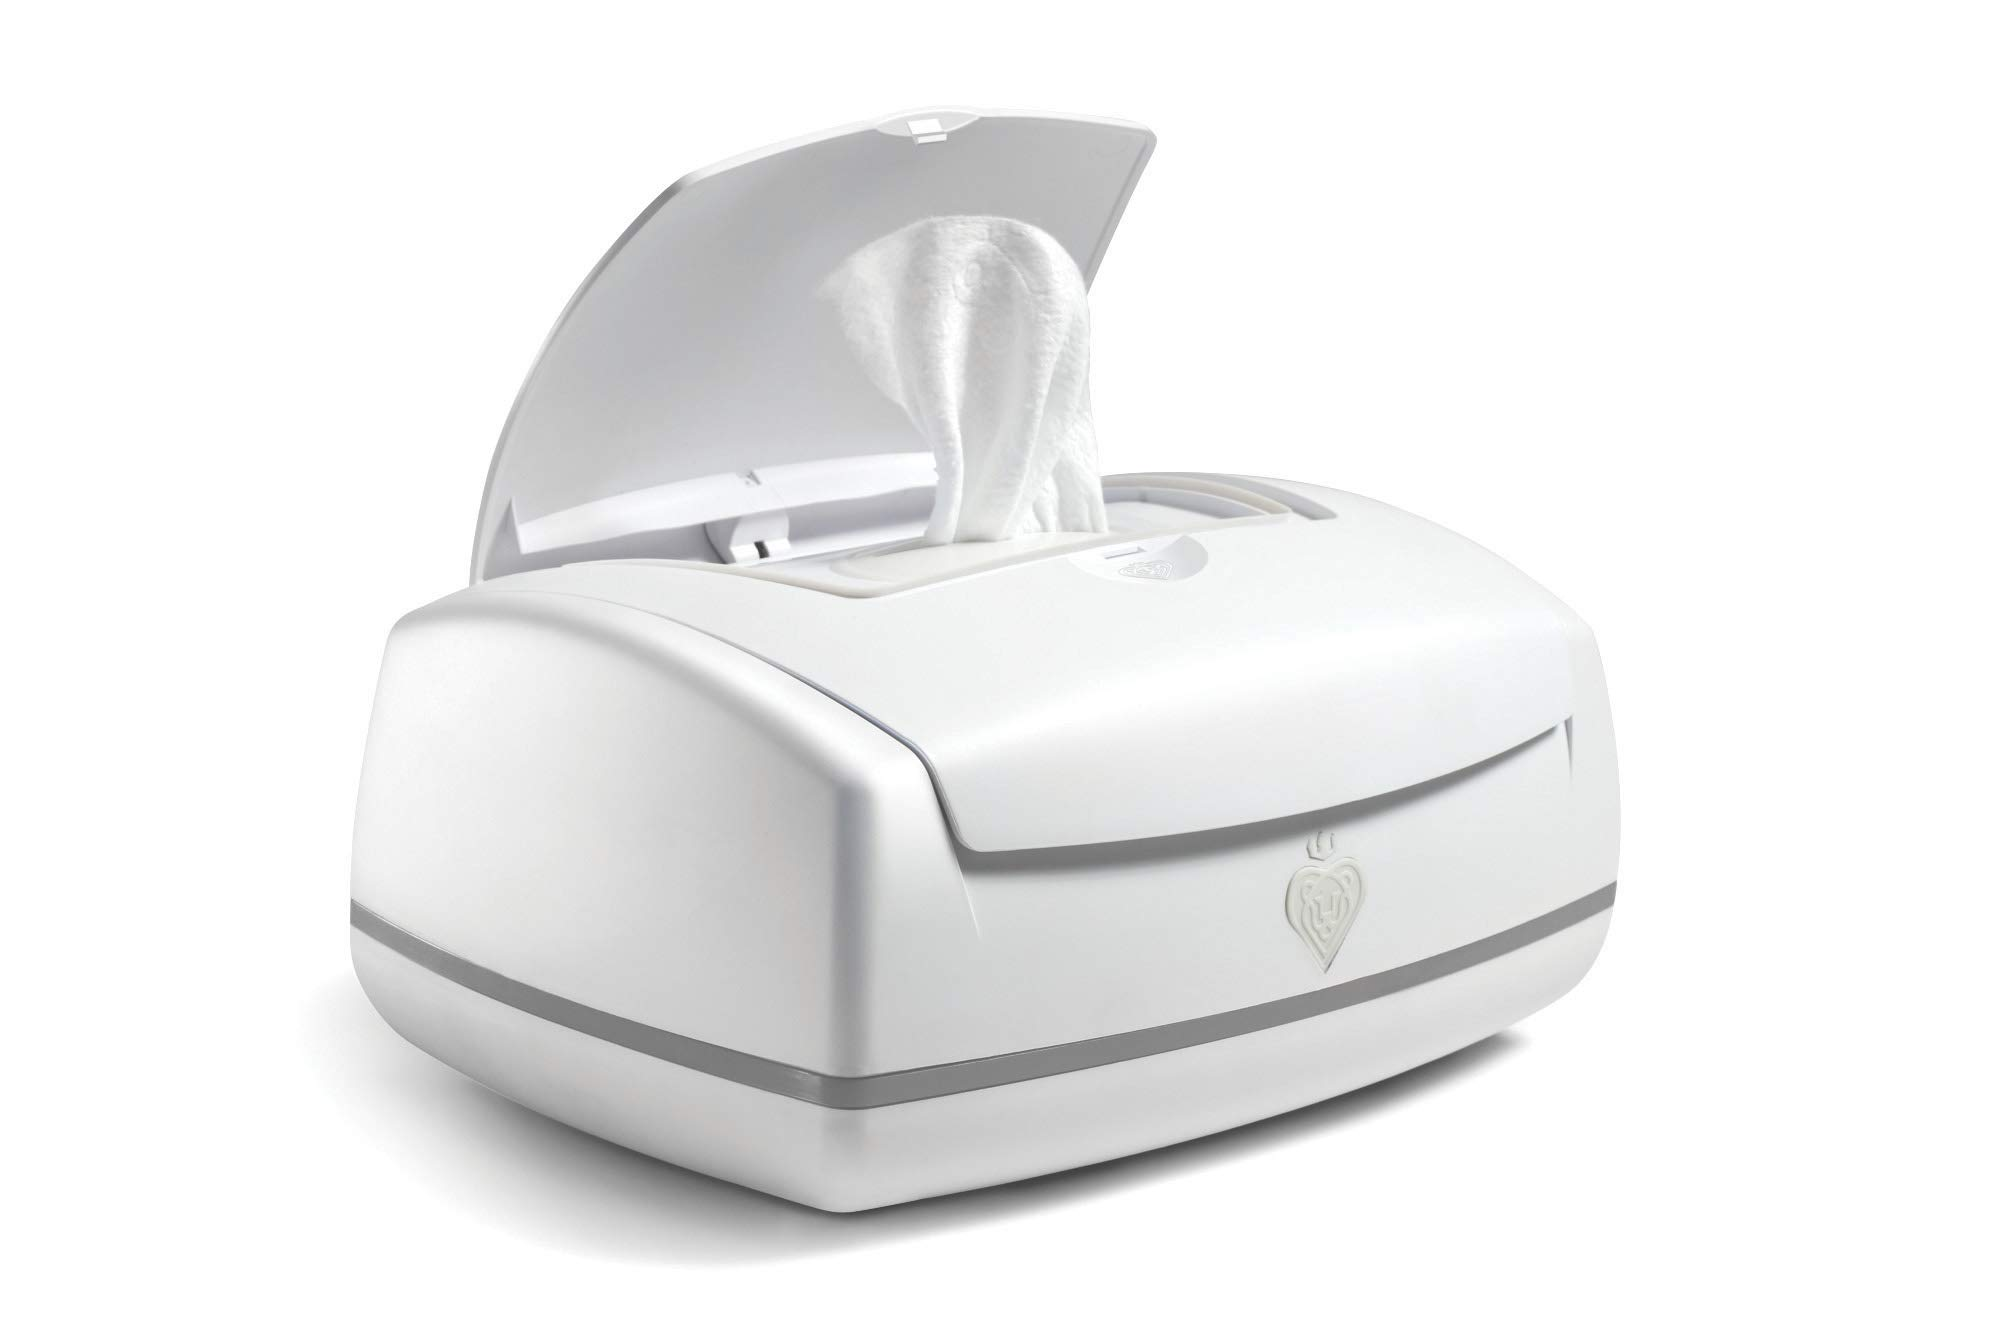 Prince Lionheart Premium wipesWARMER, Enhanced Heating with an Integrated Nightlight by Prince Lionheart